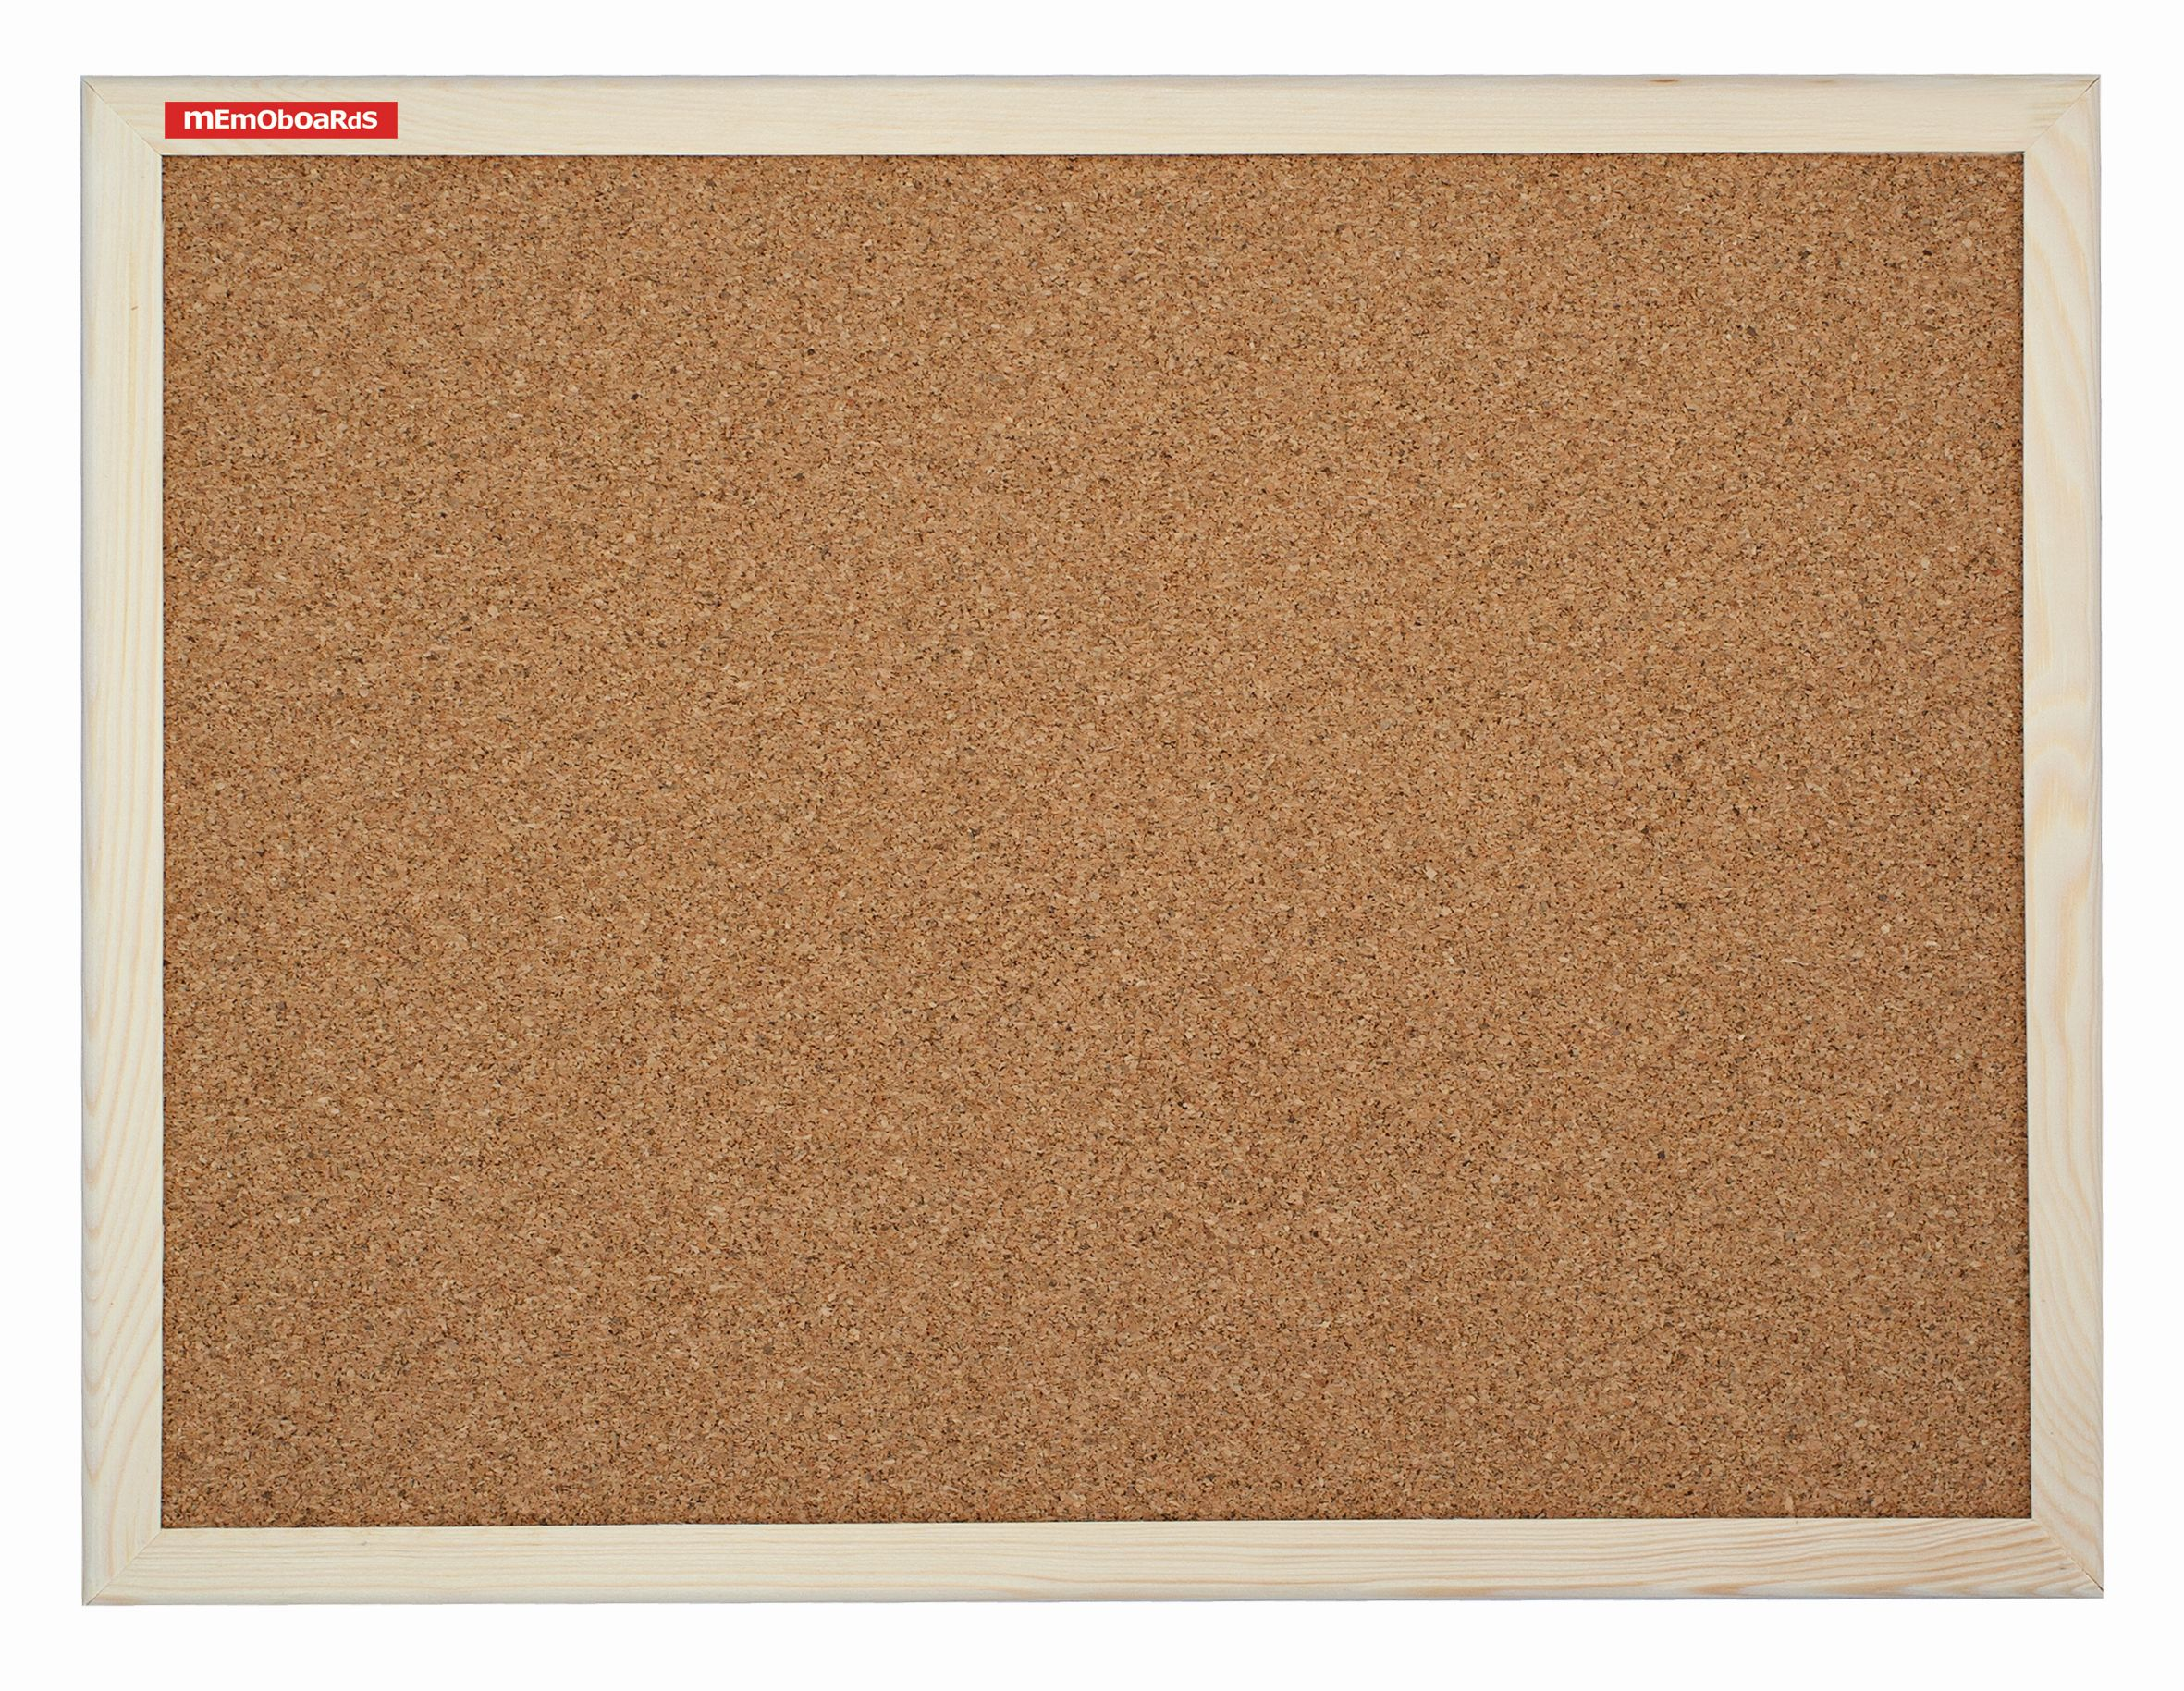 Item KORKOWA BOARD MEMOBOARDS 50x70 cm 70X50 FREEBIES